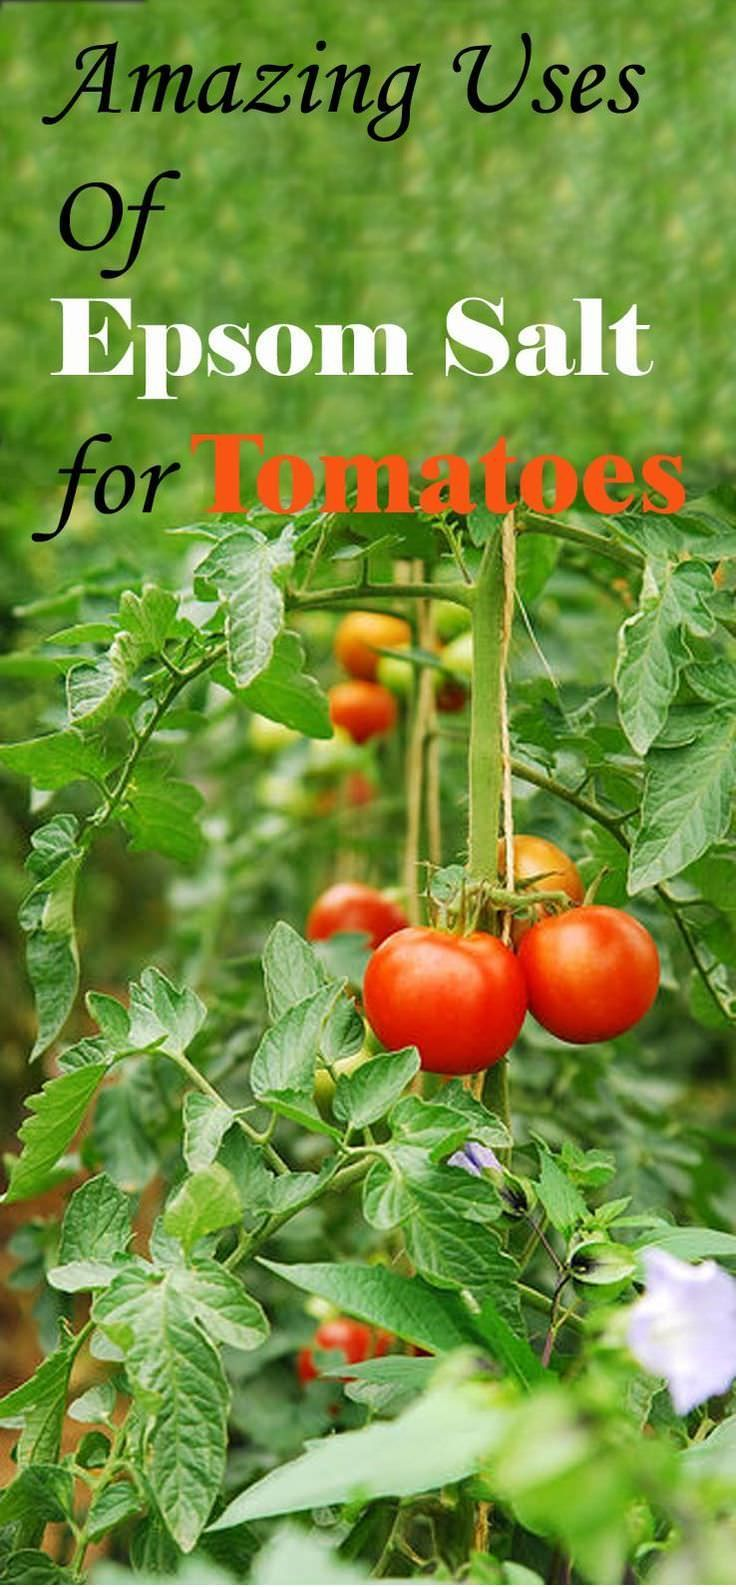 Learn how to use Epsom salt for tomatoes, tomato plants are heavy feeders and use of Epsom salt on them to thrive.